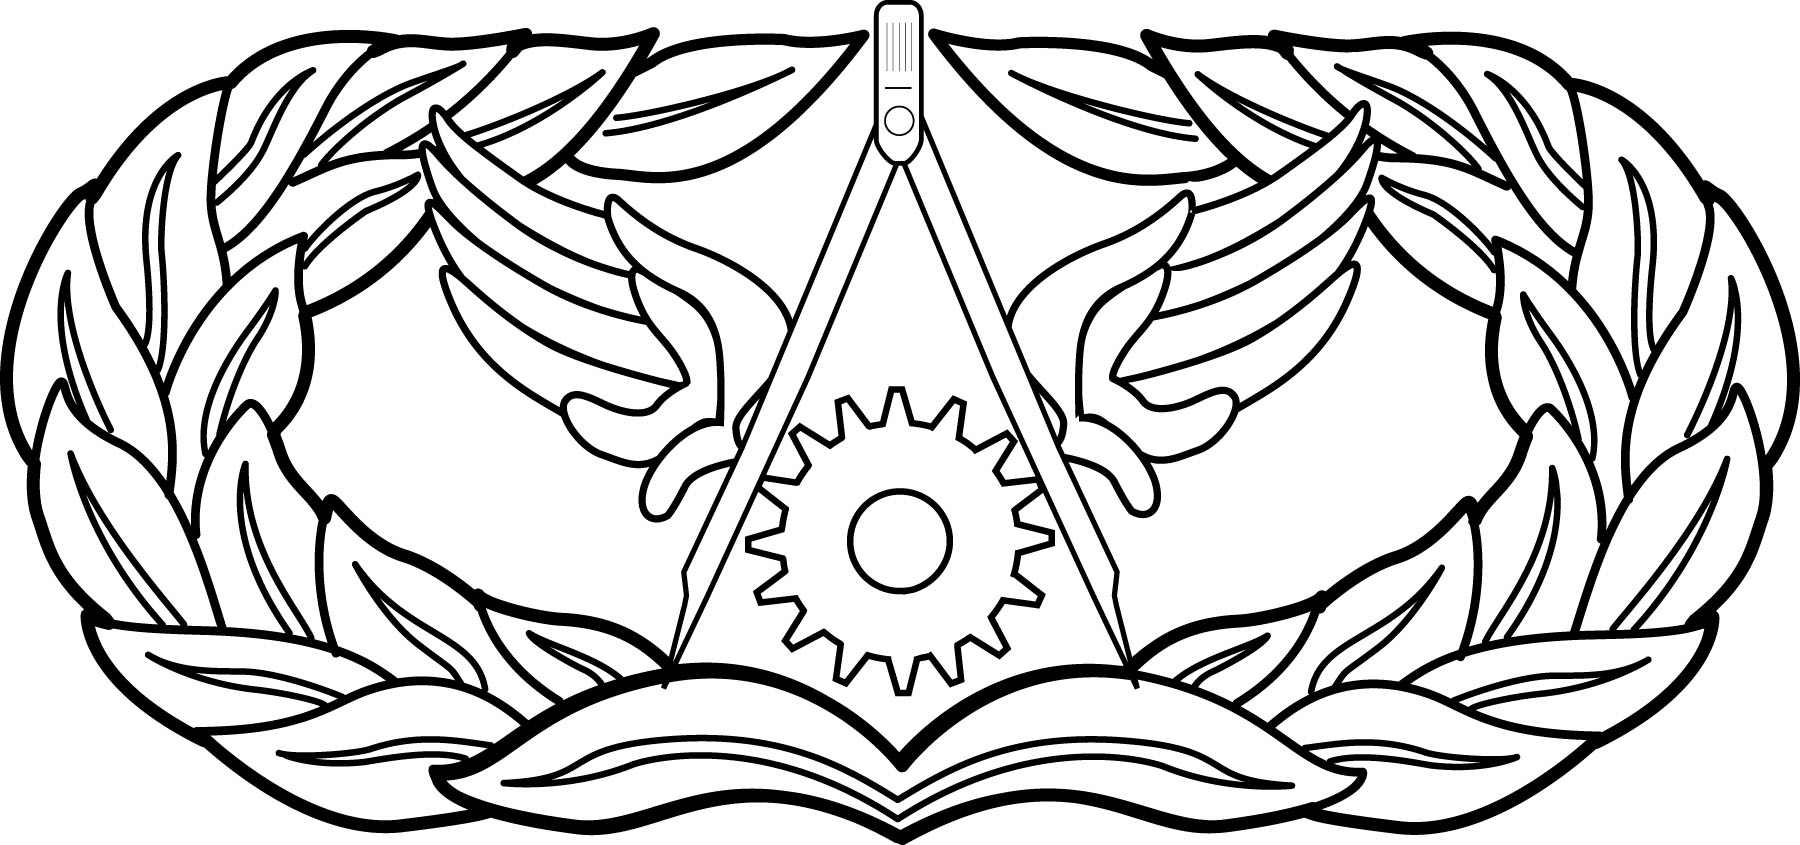 air force insignia coloring pages - photo#9